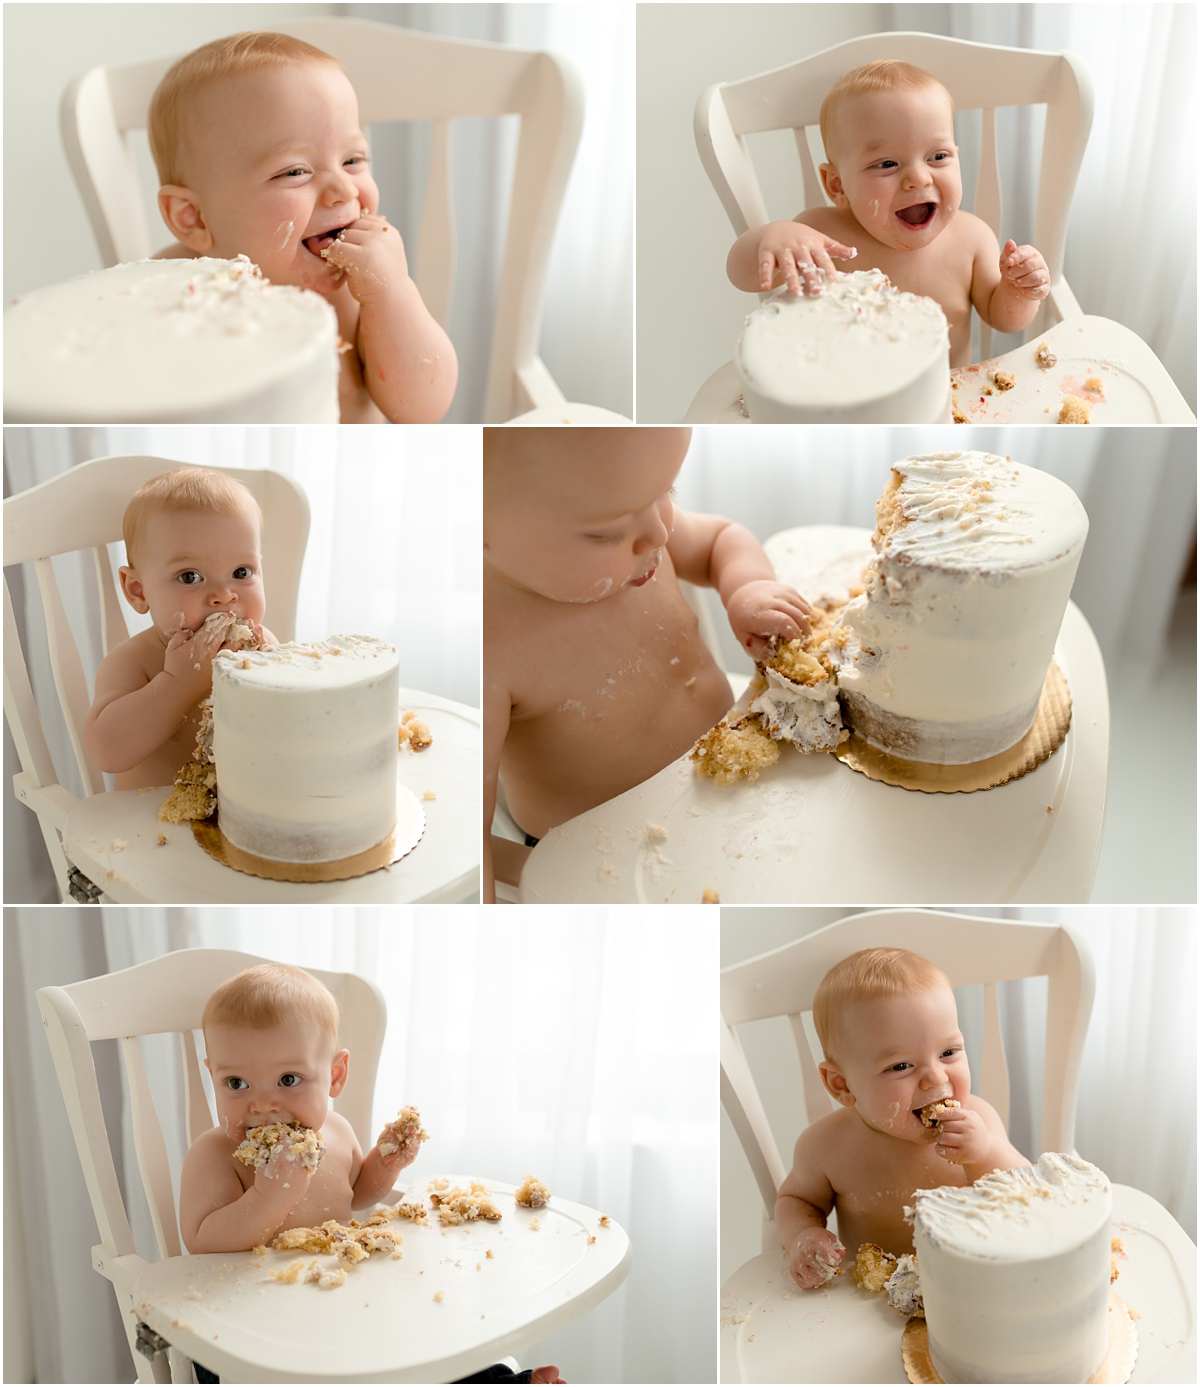 Prime First Birthday Photo Session In Ct Cake Smash Photographer Personalised Birthday Cards Petedlily Jamesorg